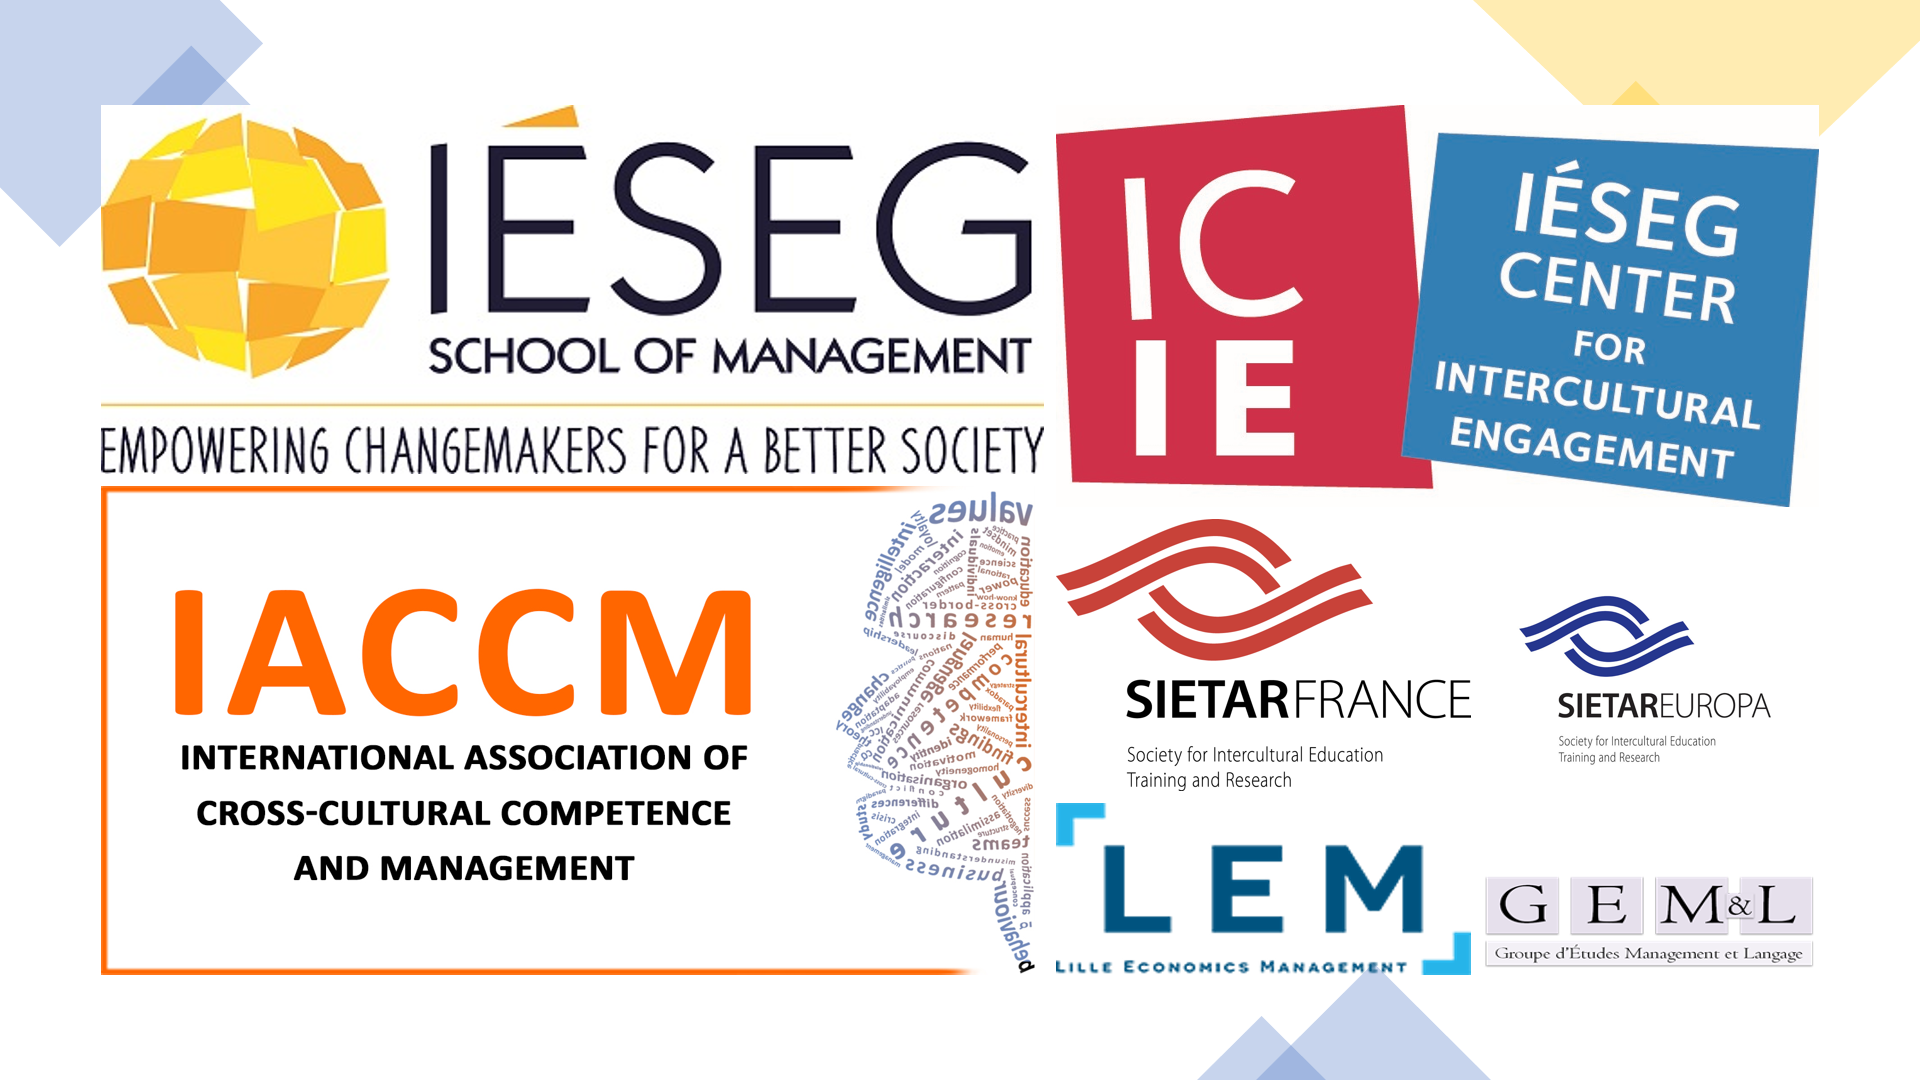 IÉSEG-ICIE Week of Intercultural Engagement March 15th-18th, 2021